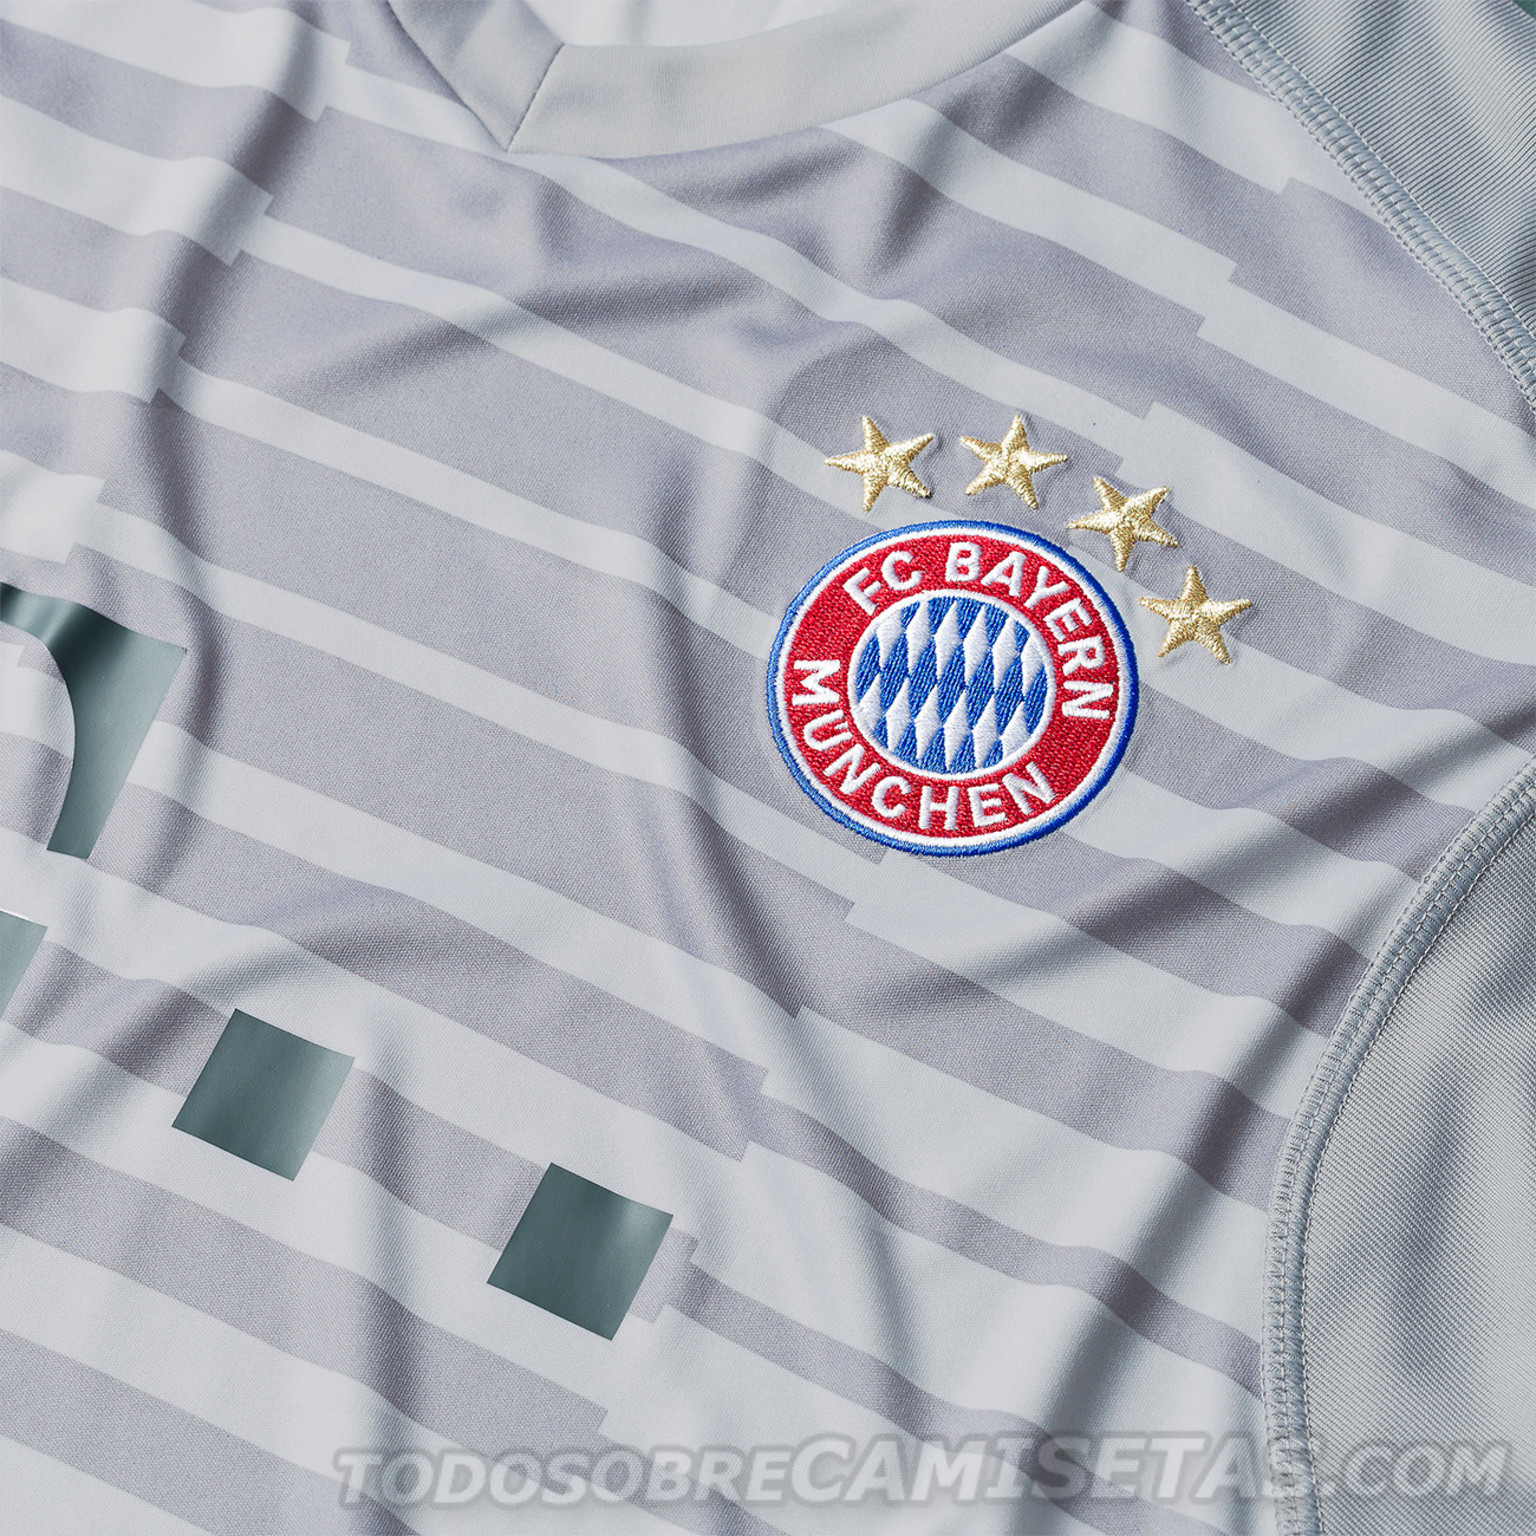 Bayern-Munich-2018-19-adidas-new-GK-home-kit-5.jpg